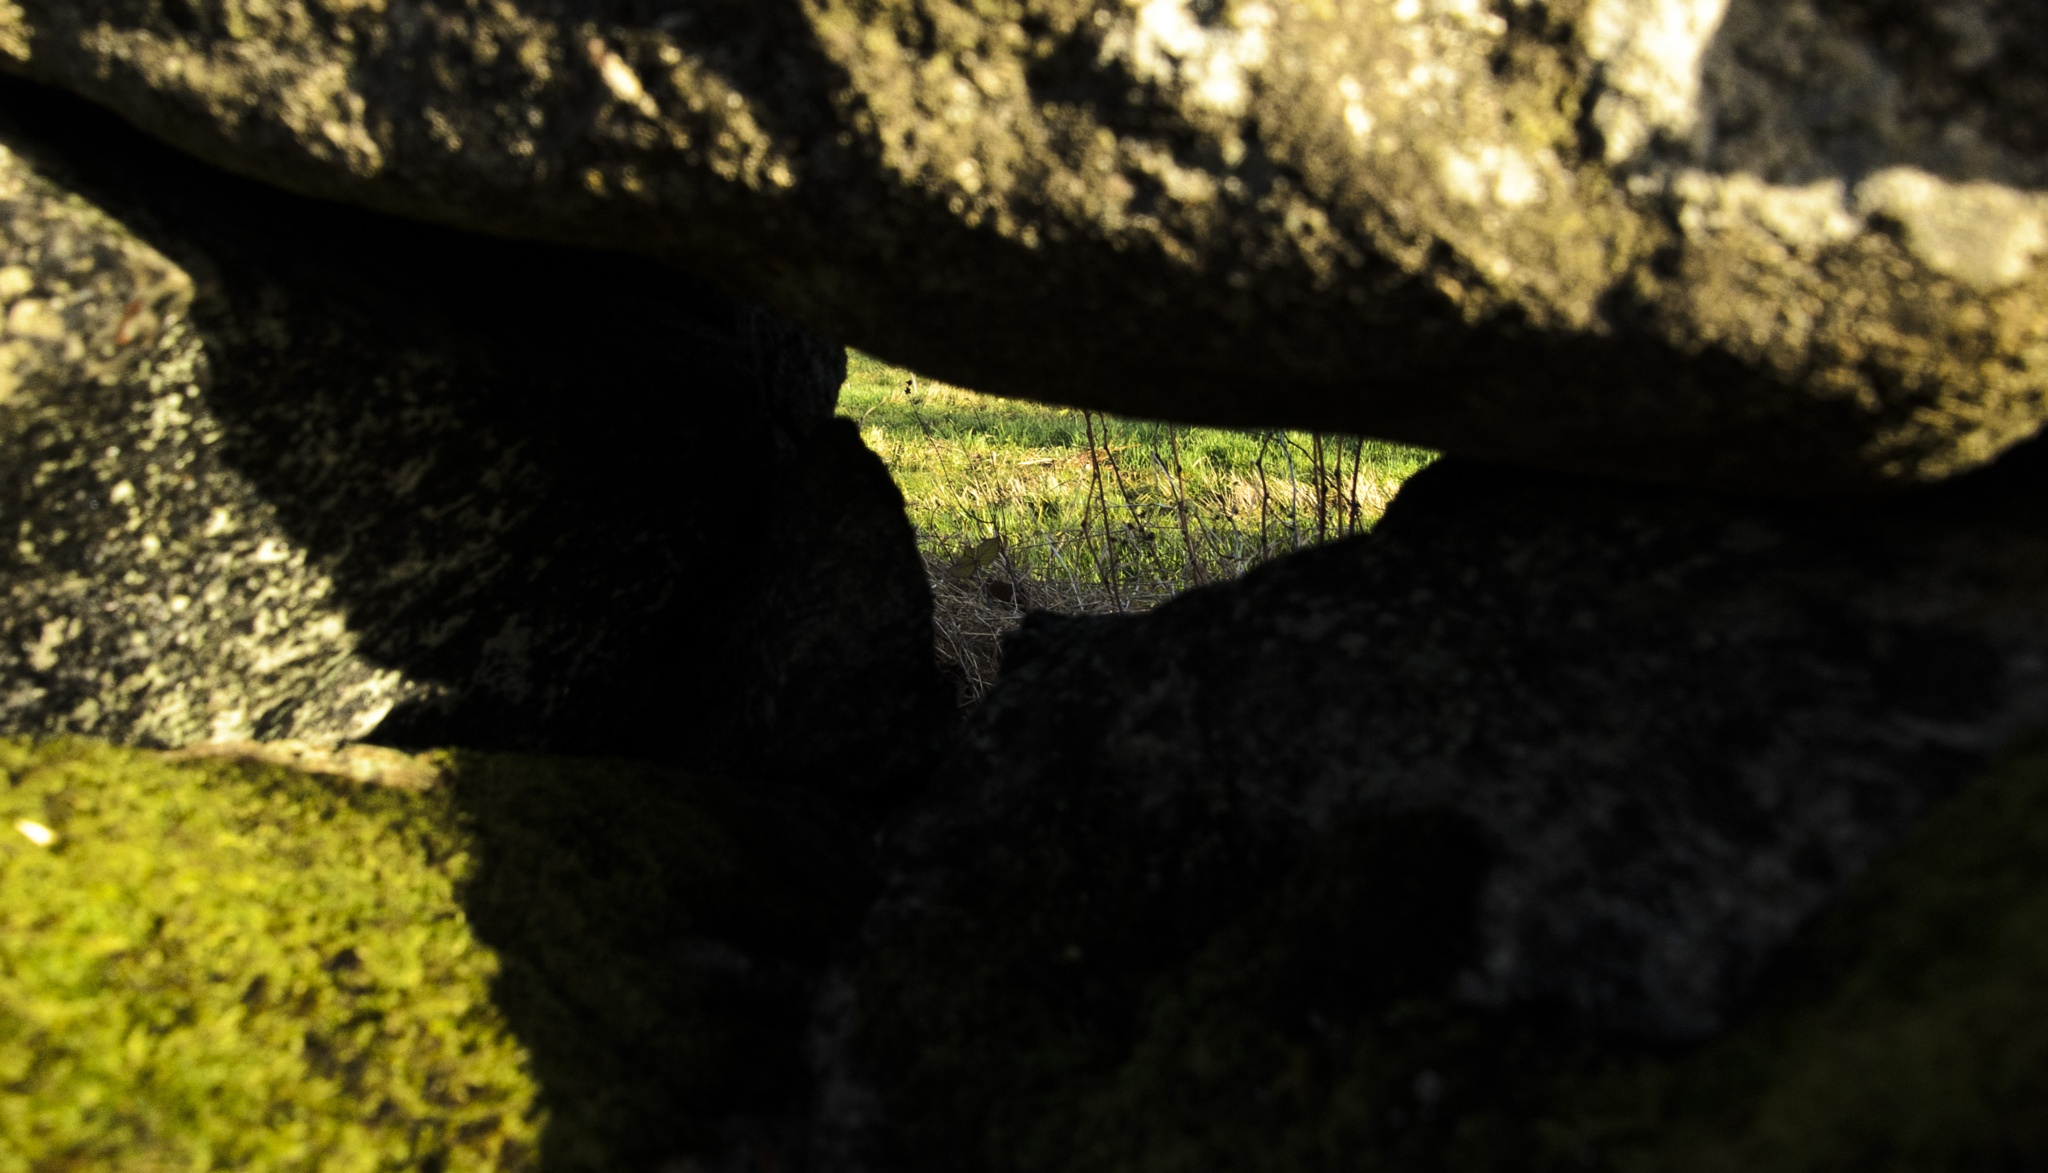 Stone in a stone wall around a field farmed by any farmer by Johnny Lythell